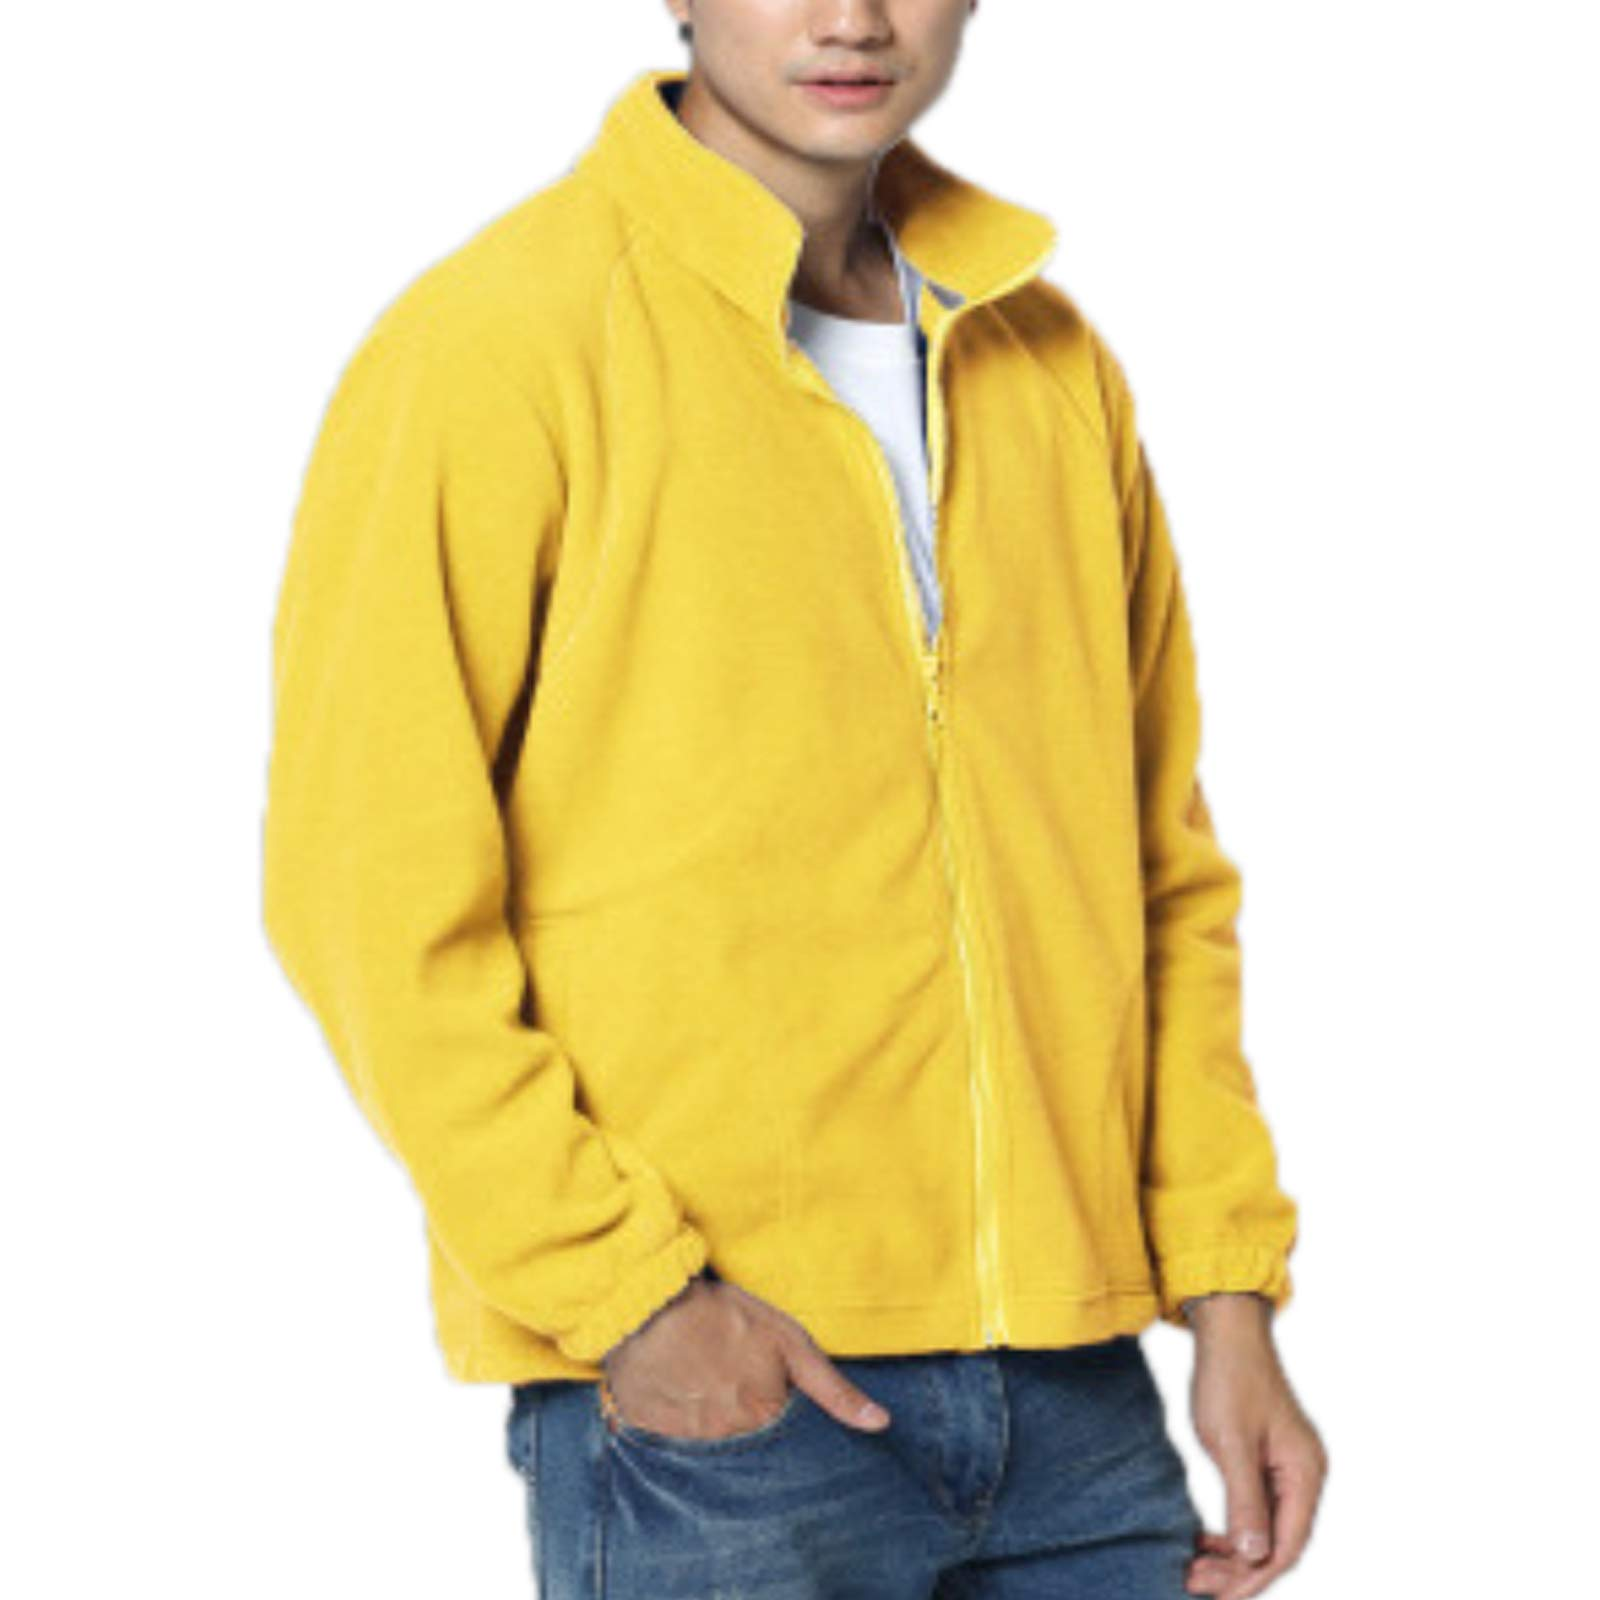 Elonglin Mens Fleece Jacket Full Zip Stand Collar Sportwear Top Outwear Yellow1 Bust 50.7''(Asie 3XL) by Elonglin